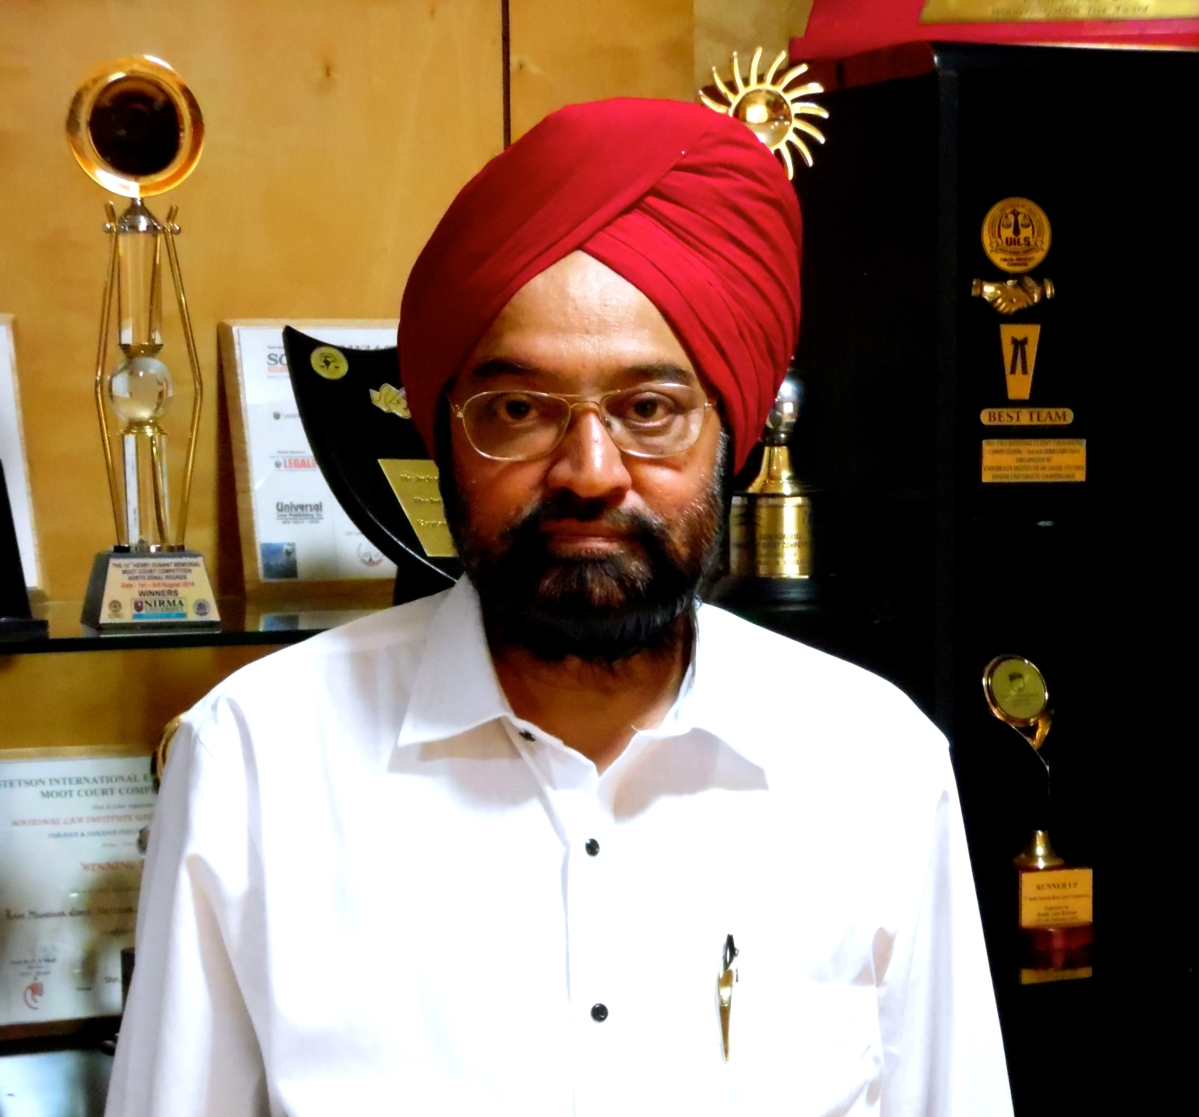 I am going to push for making the whole CLAT process 100% online- Dr. Gurdip Singh, Vice Chancellor at RMLNLU